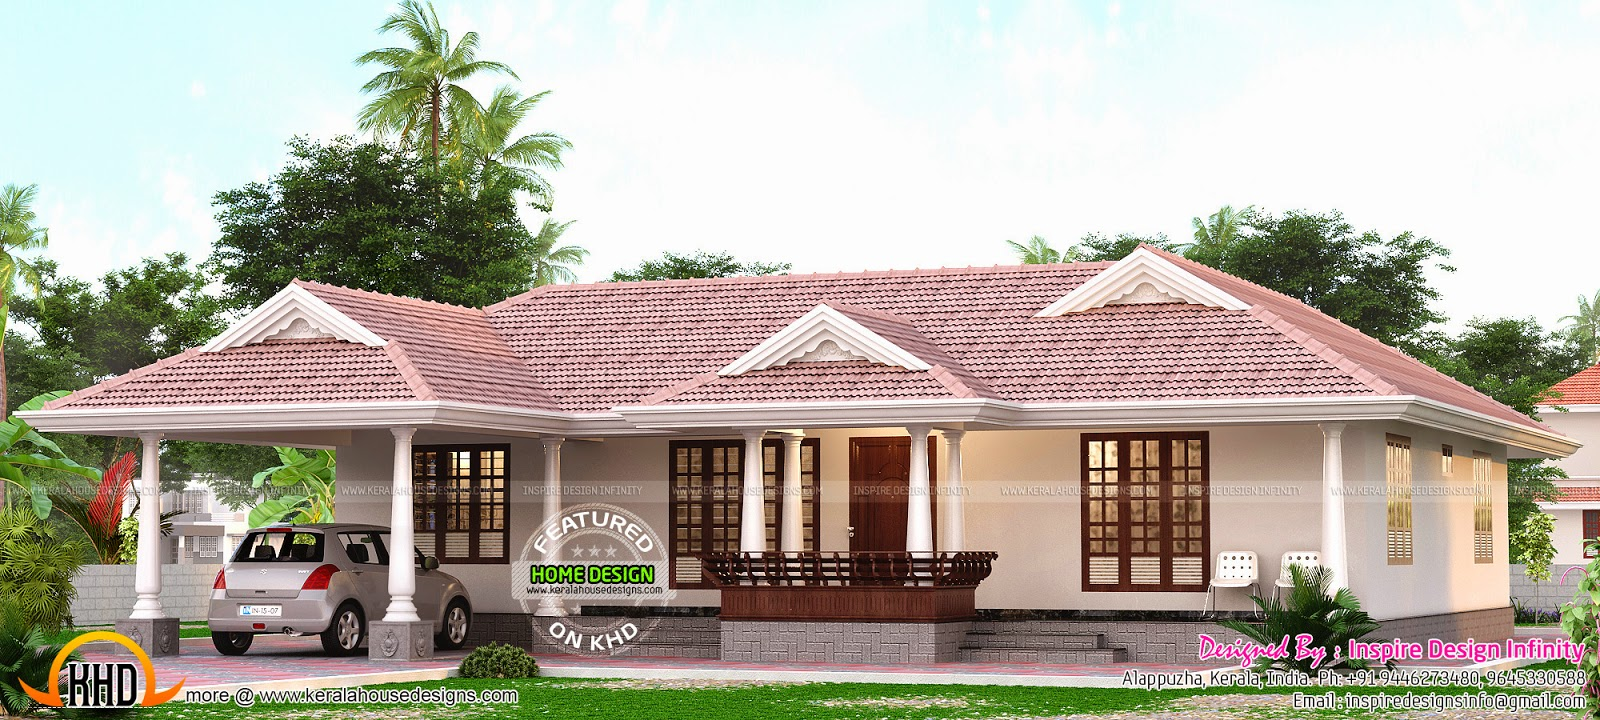 House plans kerala style traditional for House plans in kerala